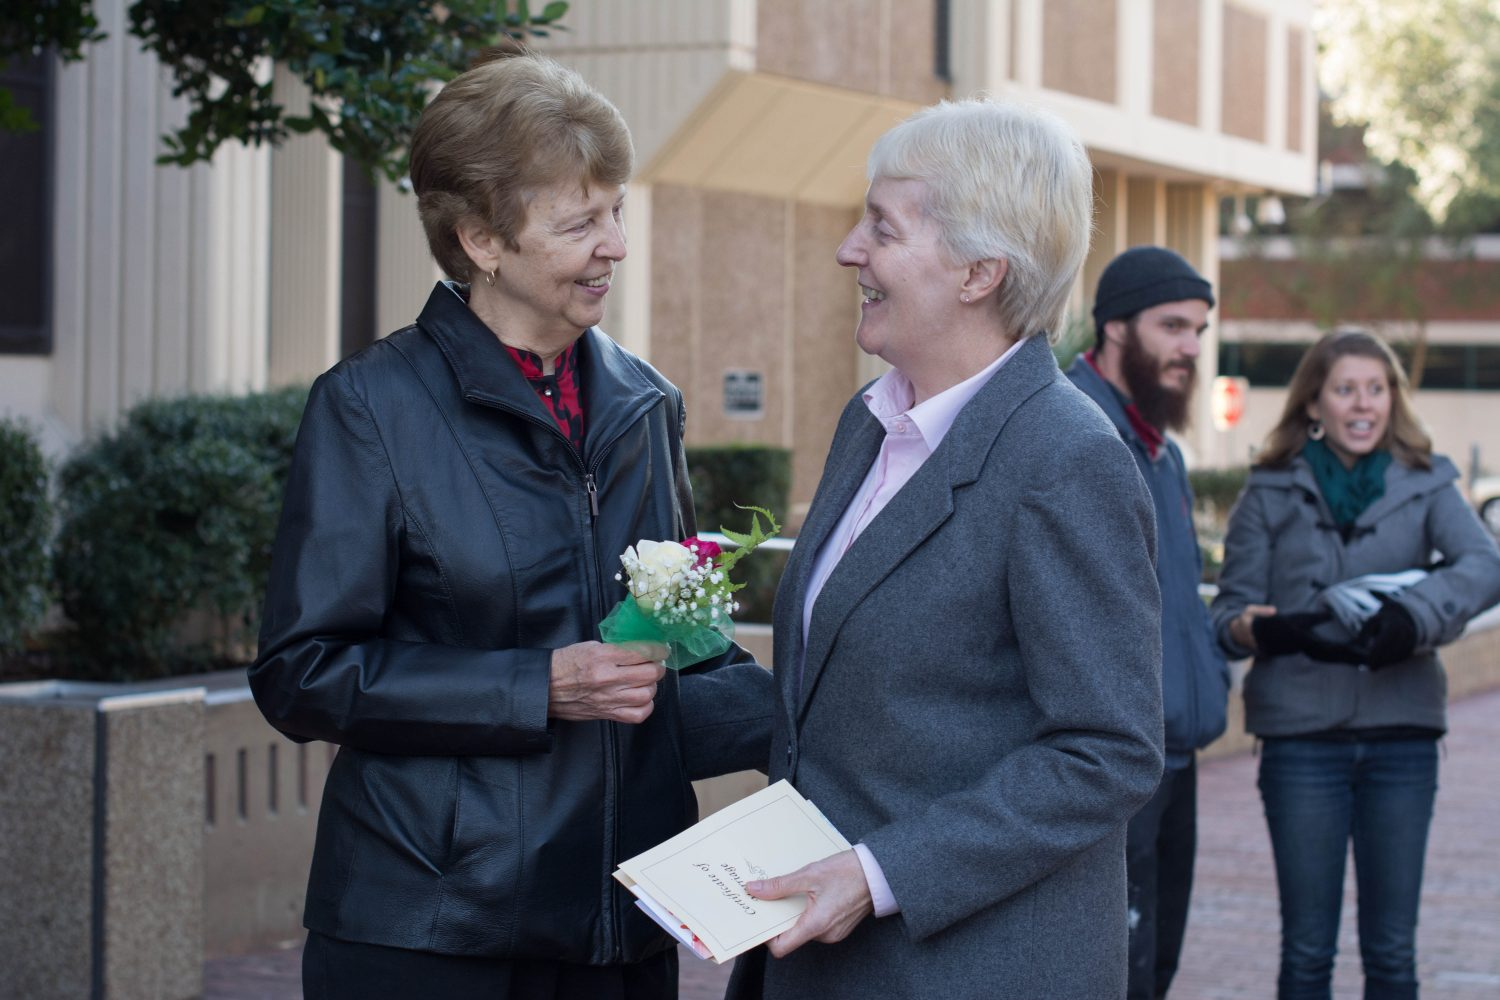 Karen Niederkohr (left) and Lola Yousey (right) celebrate their new marriage license on Tuesday, Jan. 6 outside the Alachua County Courthouse with a bouquet or fake flowers provided by the United Church of Gainesville.